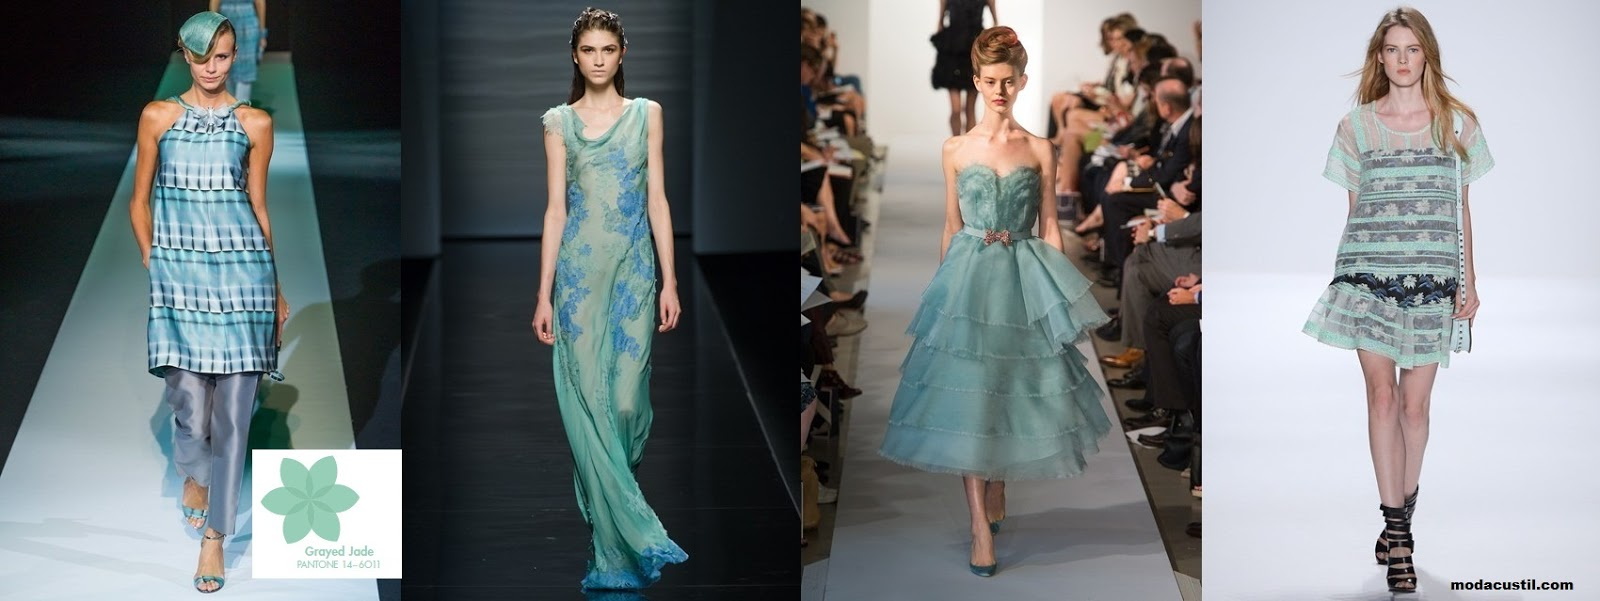 Grayed Jade - Colors Spring Summer 2013 Fashion